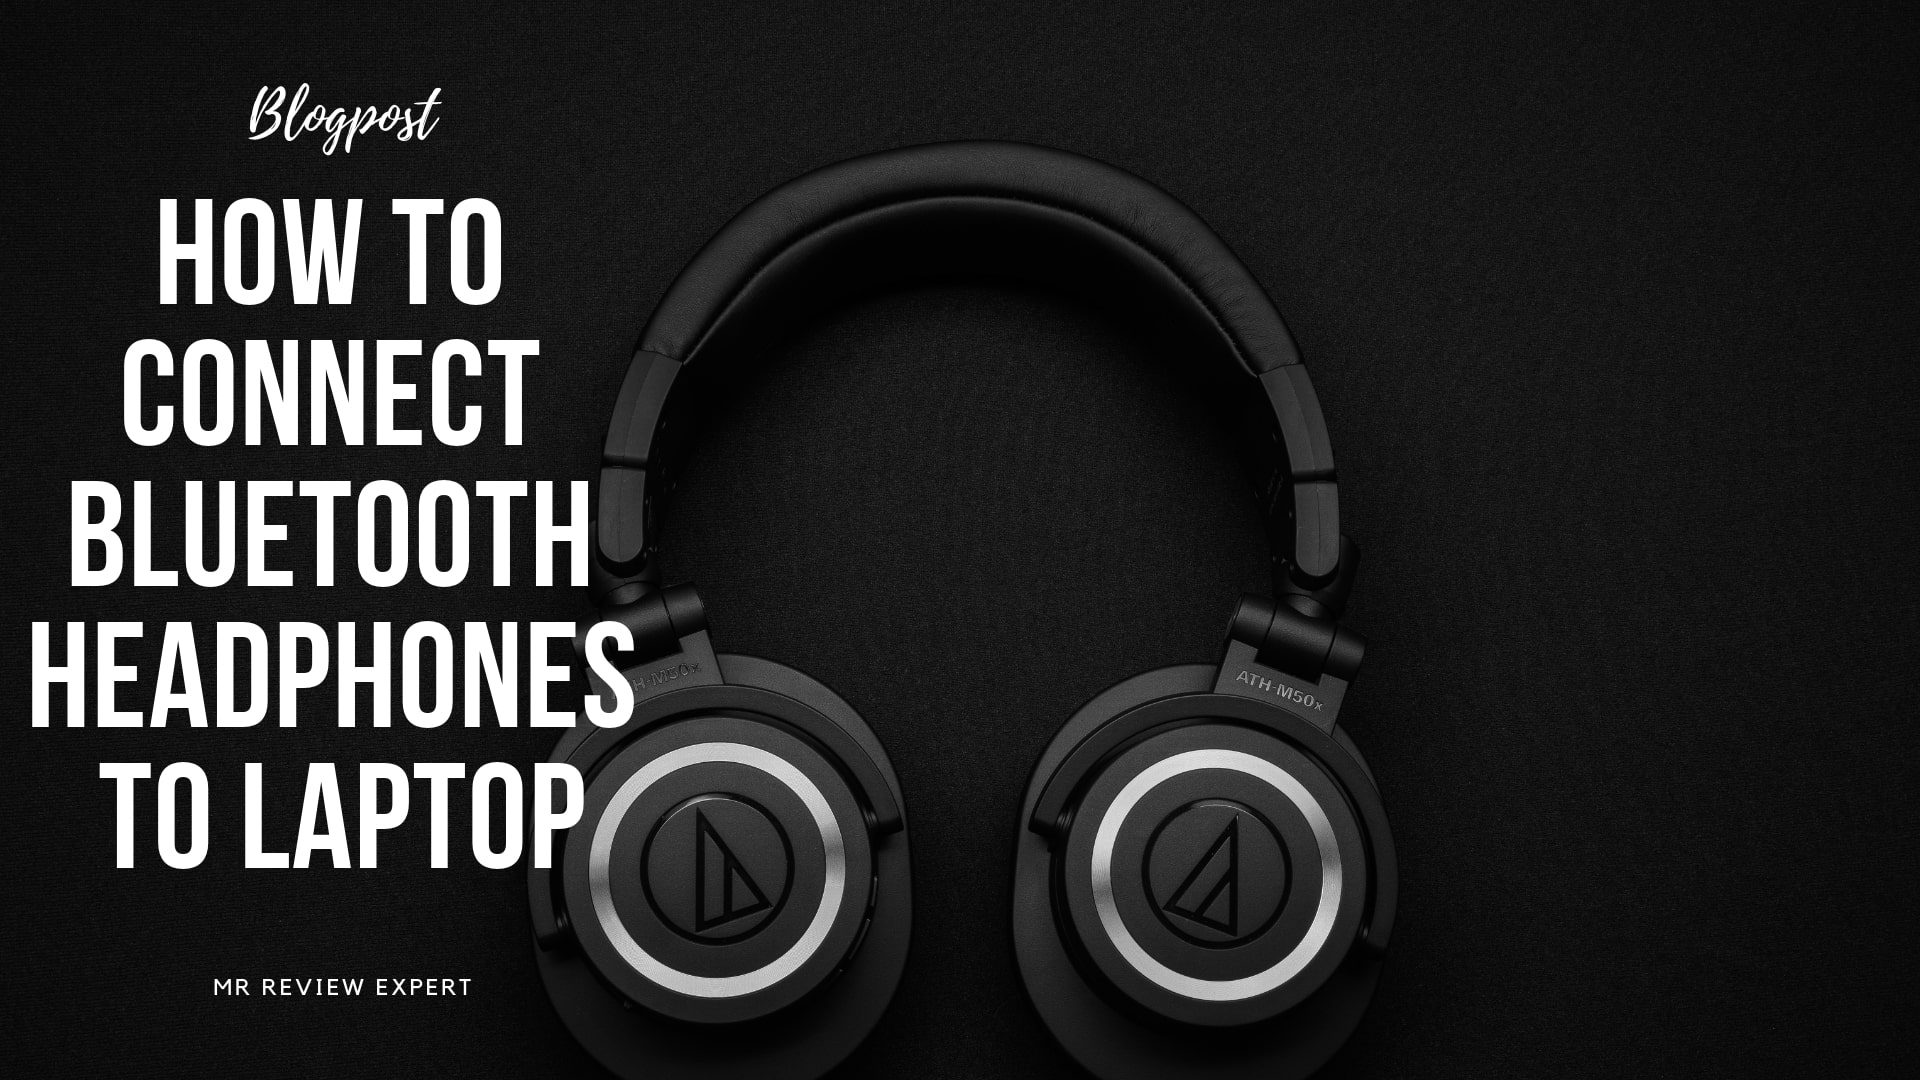 How To Connect Bluetooth Headphones to Laptop?